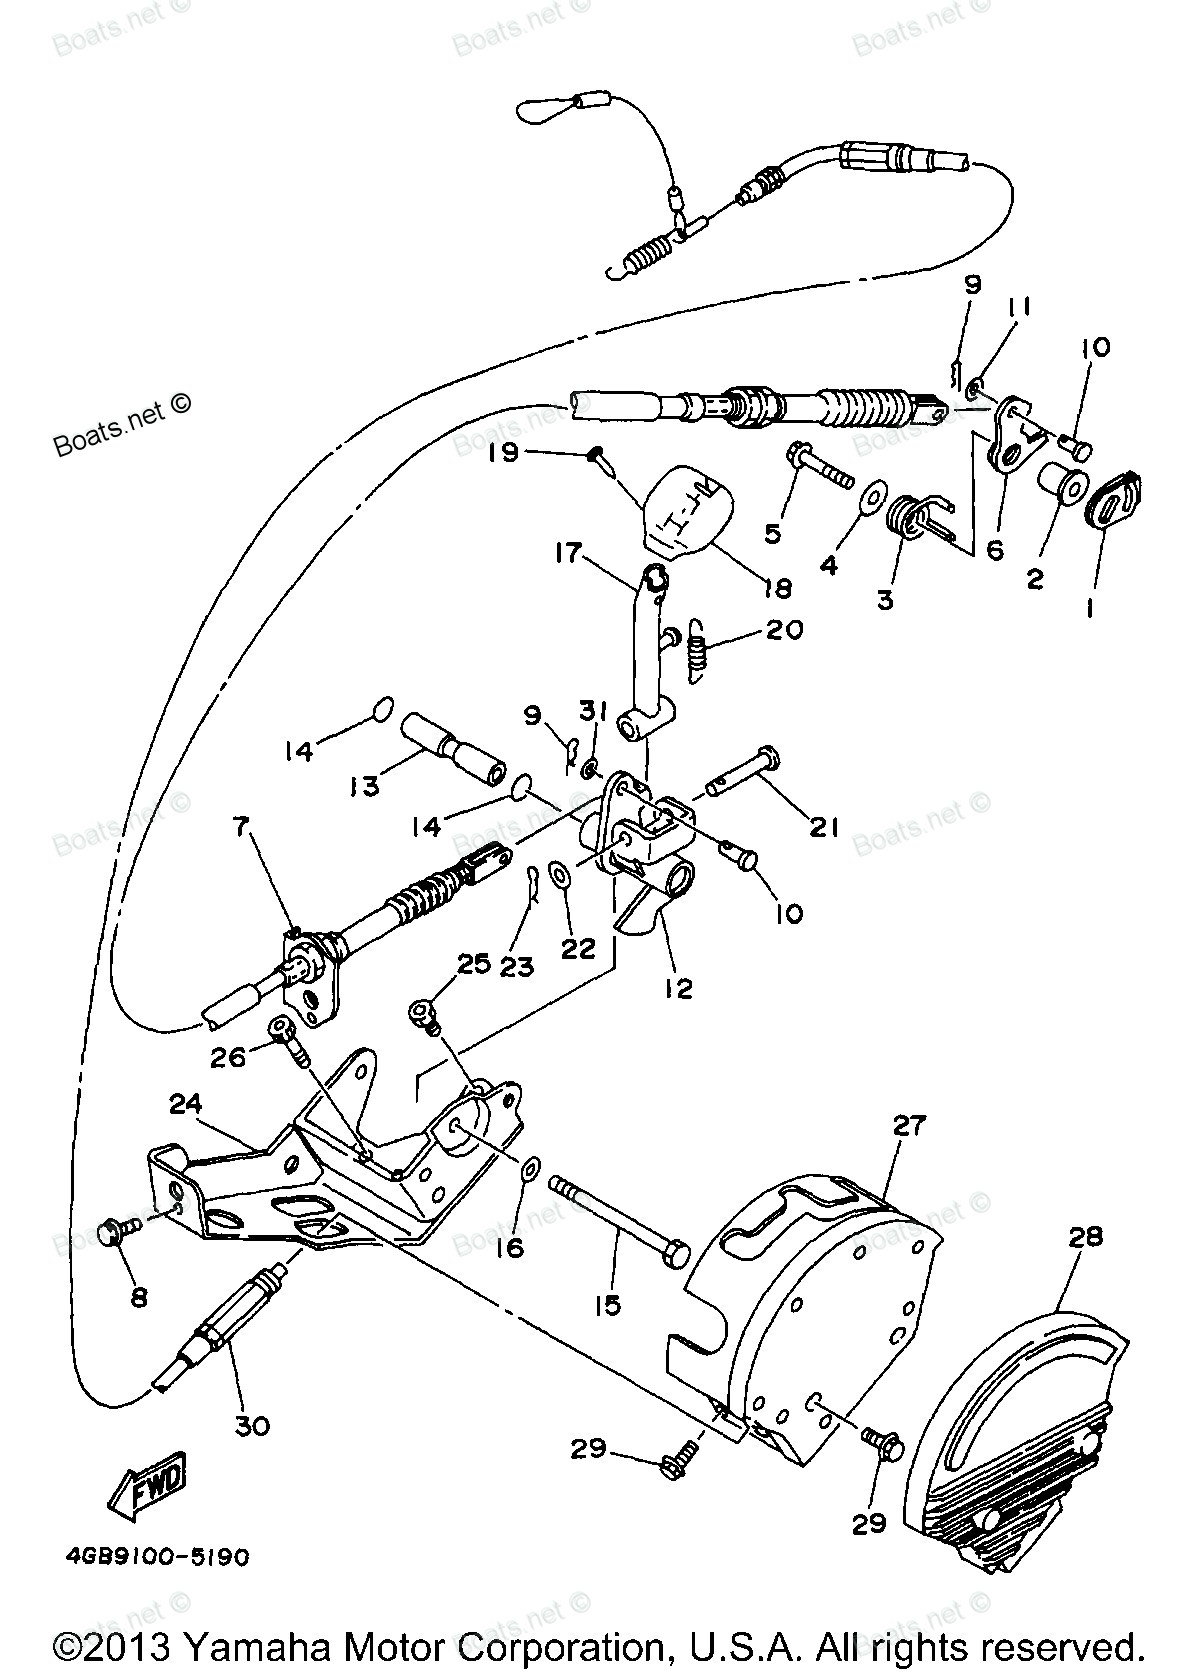 gibson les paul recording wiring diagram ezgo windshield drawing at getdrawings free for